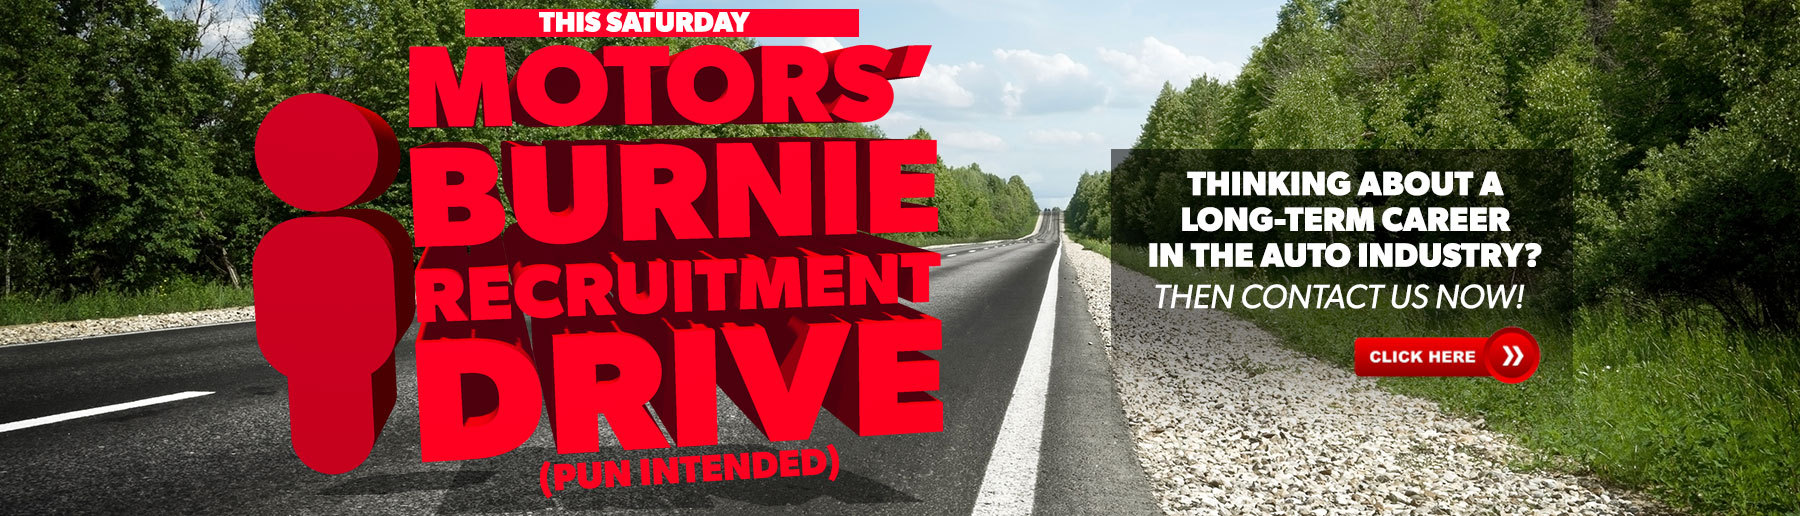 Burnie Recruitment Drive